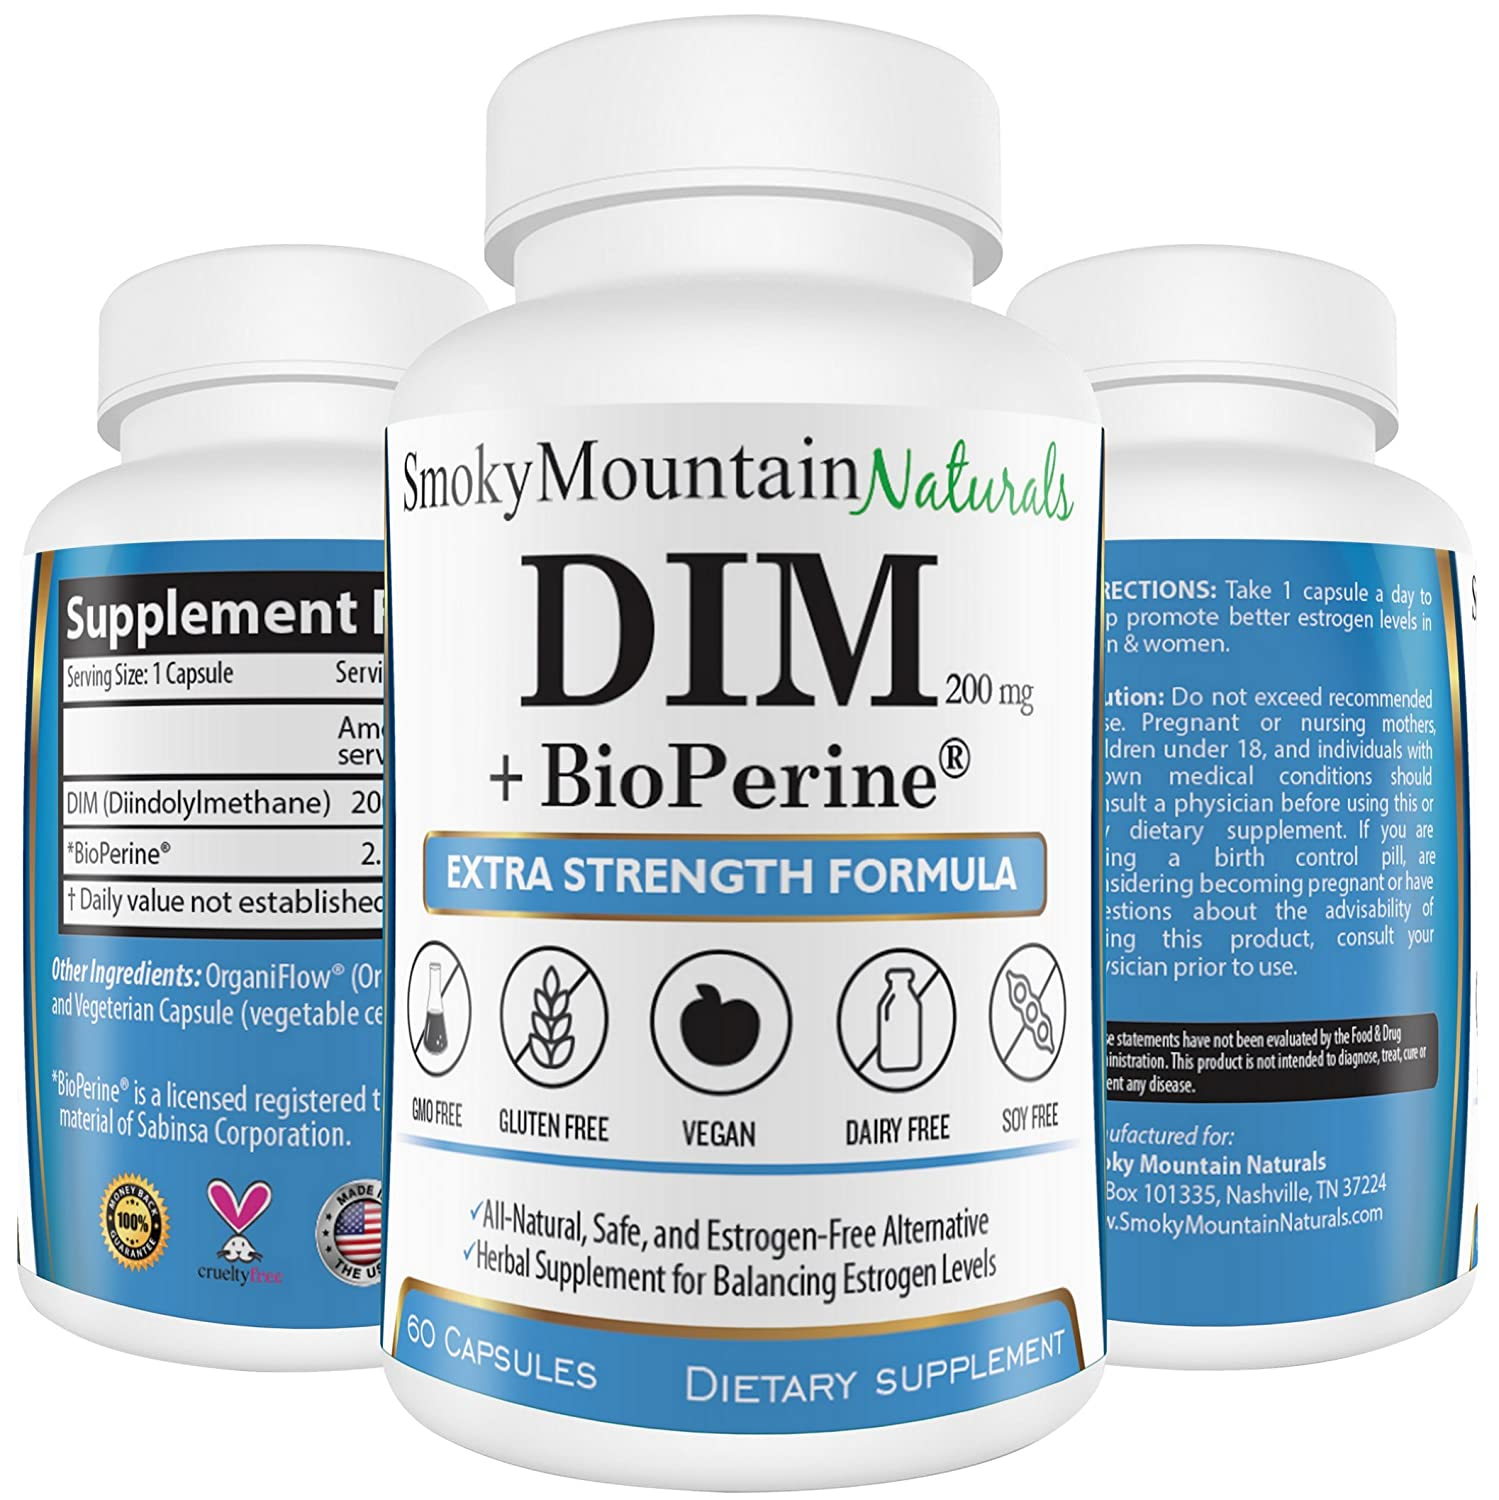 Dim Supplement 200mg Plus Bio Perine (2 Month Supply) Menopause Relief, Estrogen Balance, Pcos & Cystic Hormonal Acne Treatment, & Body Building.... by Smoky Mountain Naturals